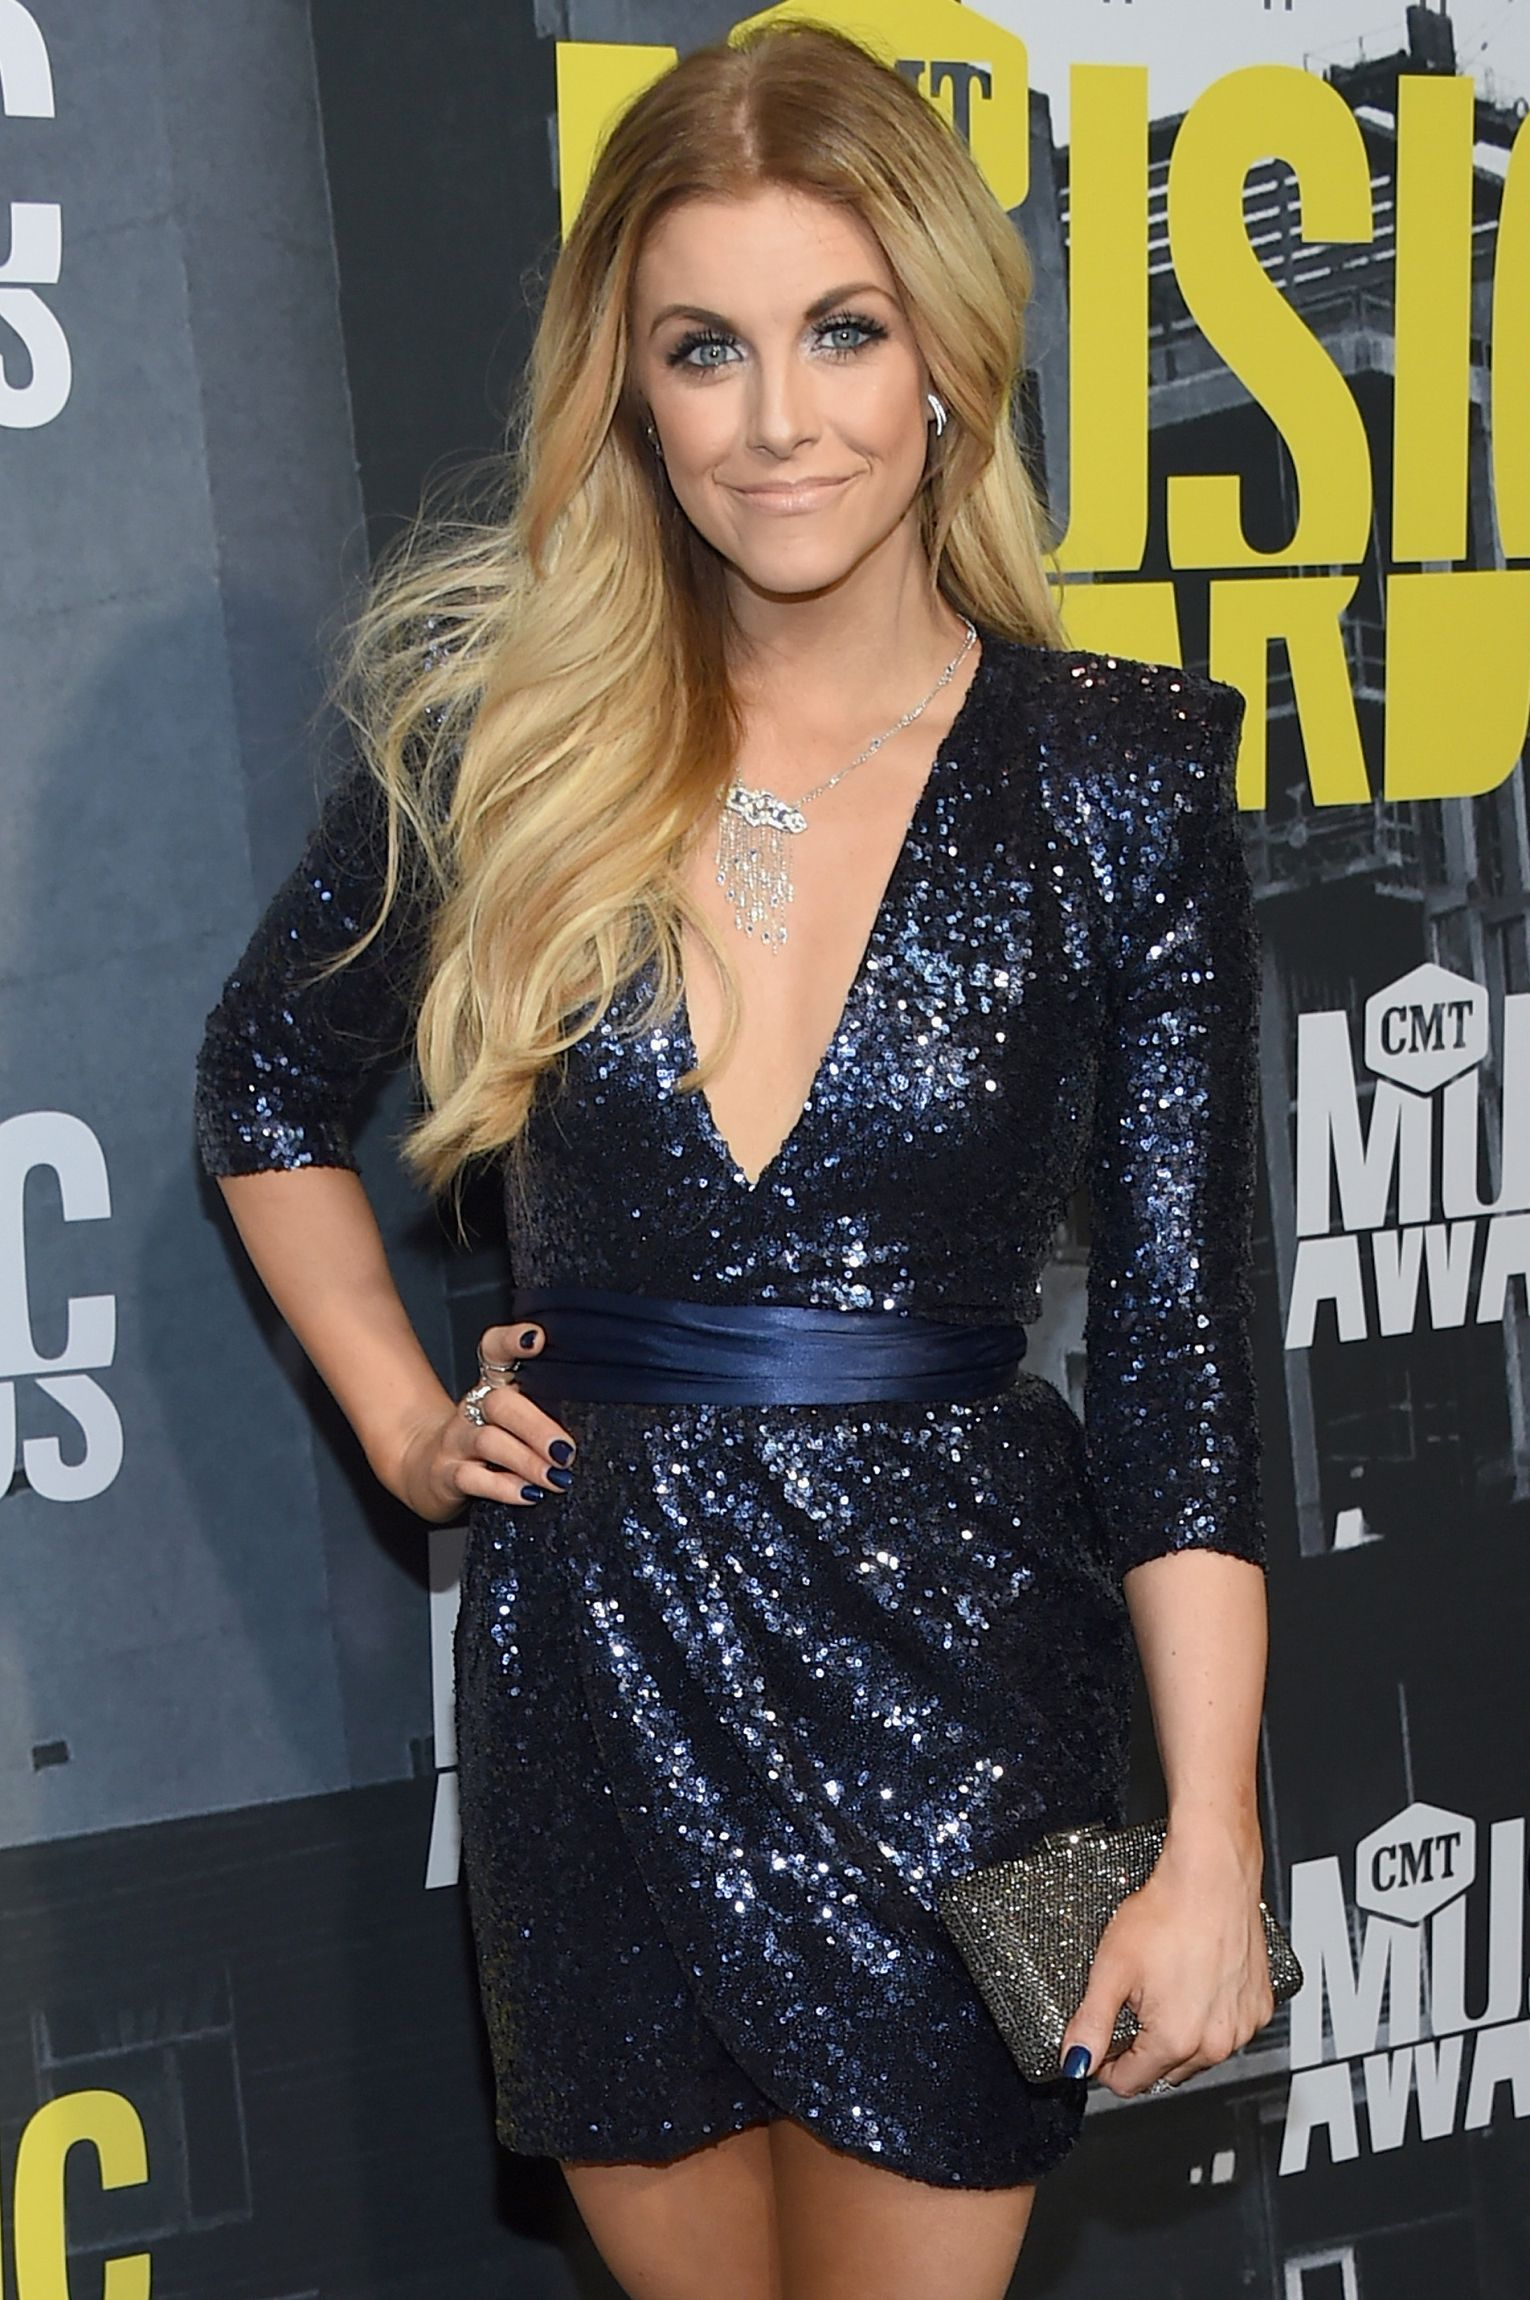 Lindsay Ell Check out CMT Music Awards 2017 red carpet